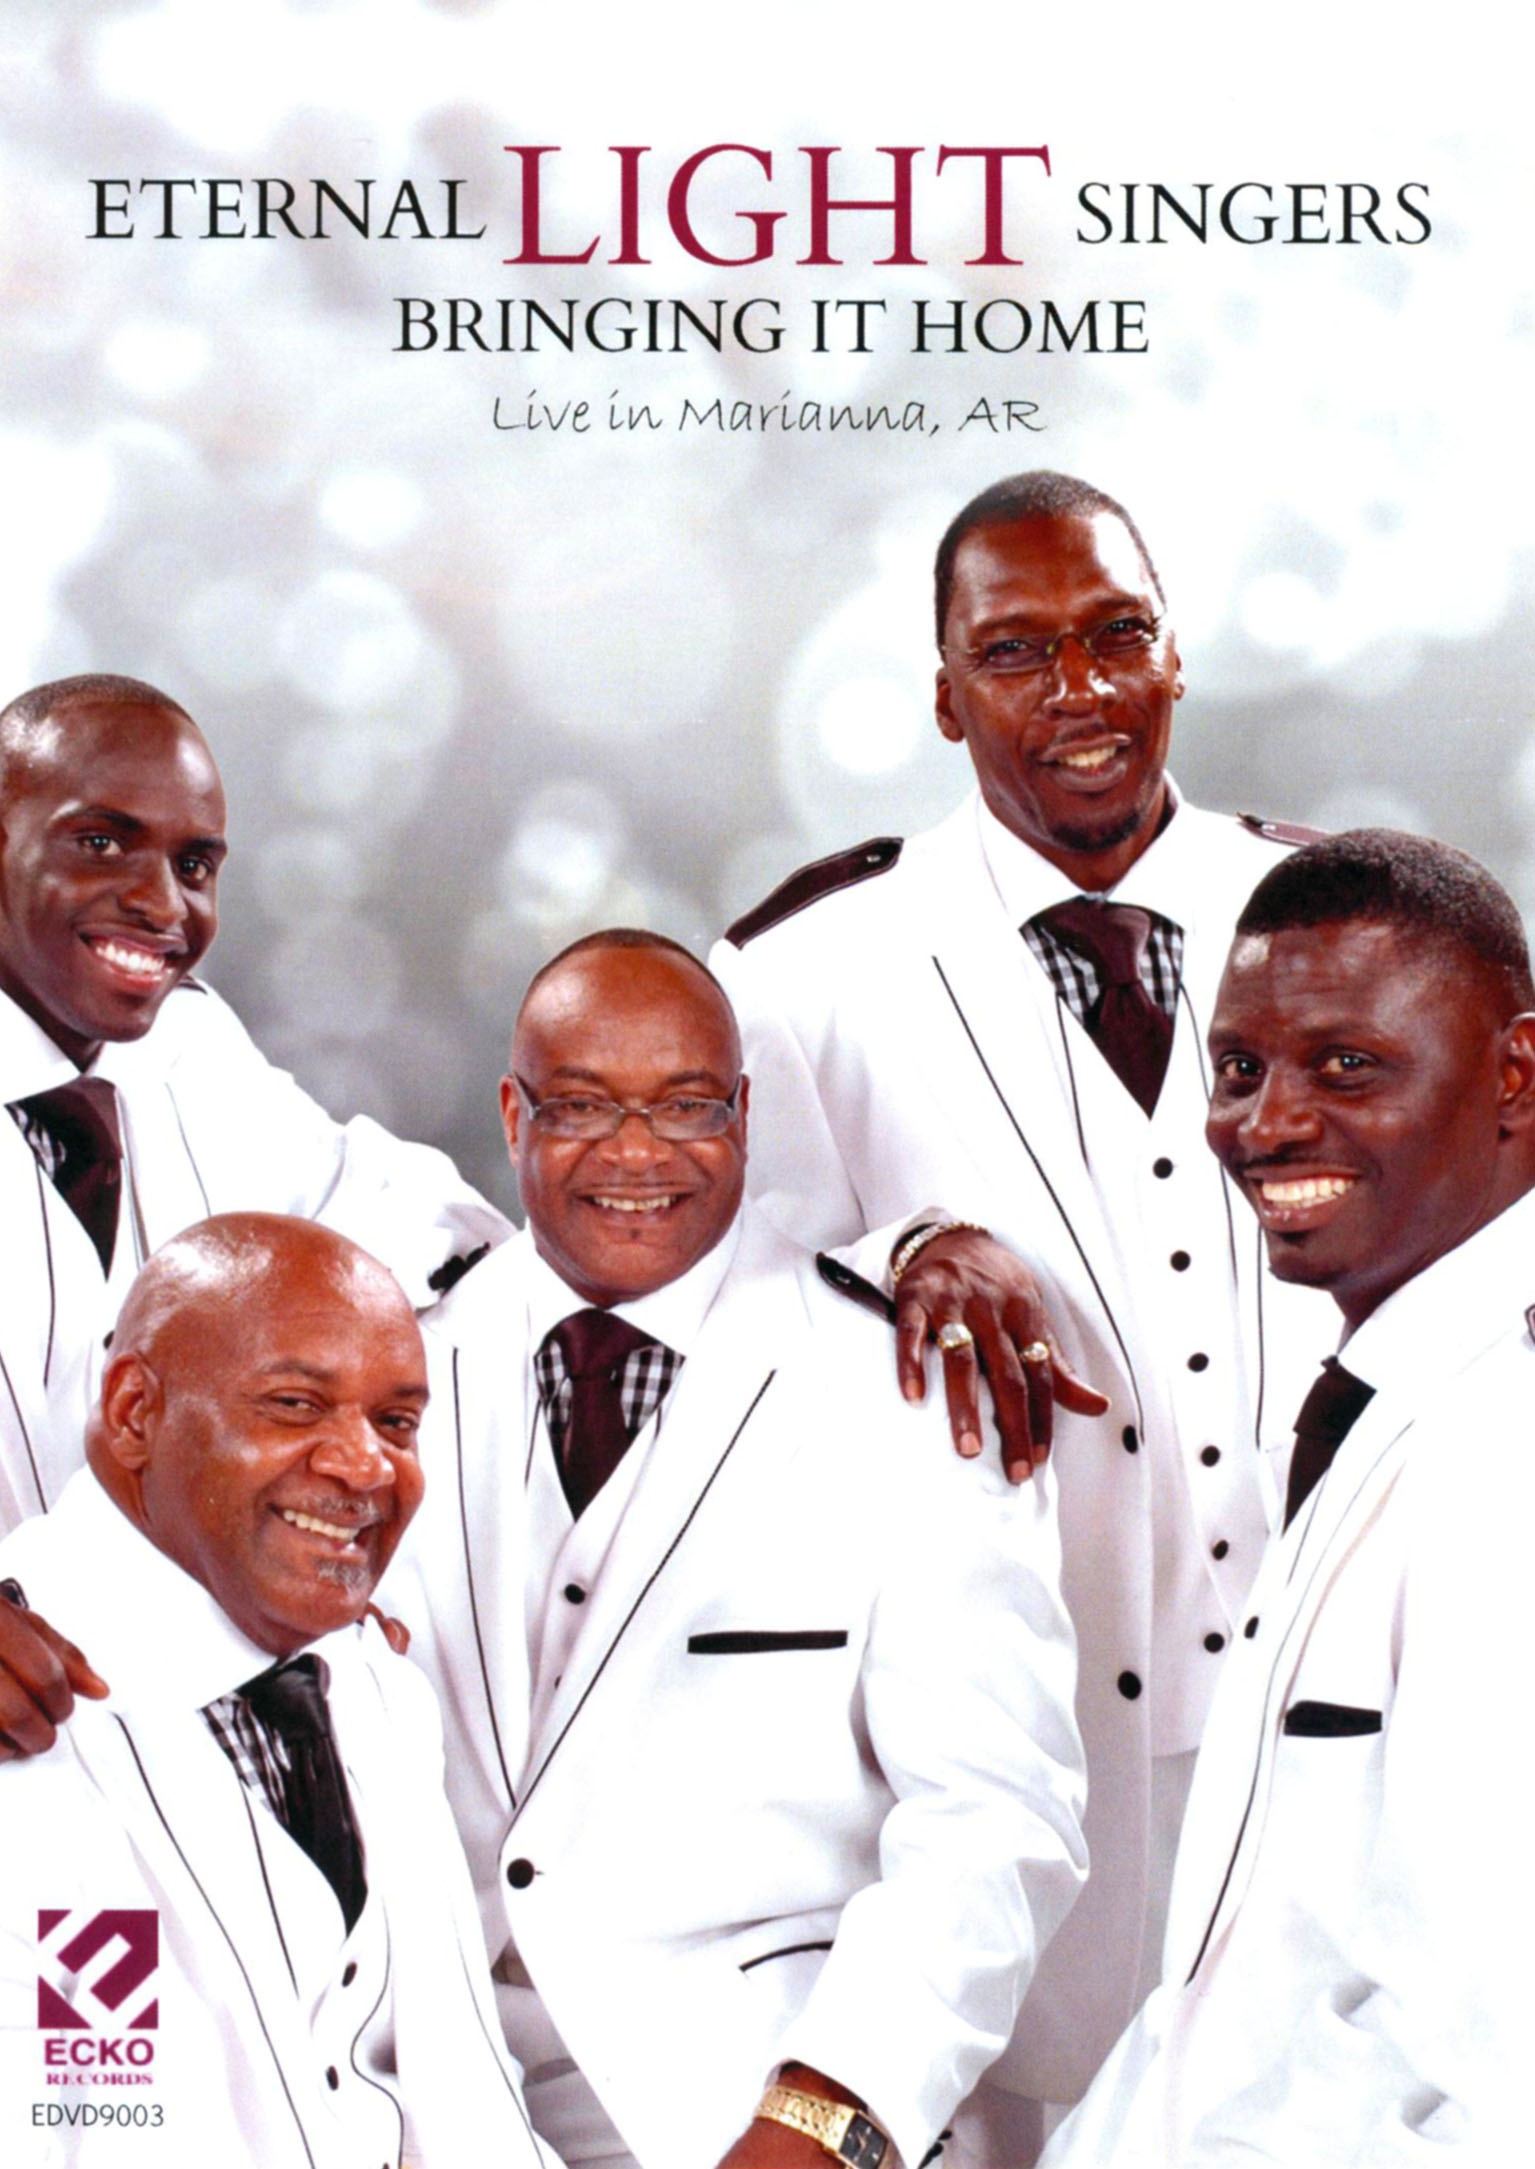 Eternal Light Singers: Bringing It Home - Live in Marianna, AR